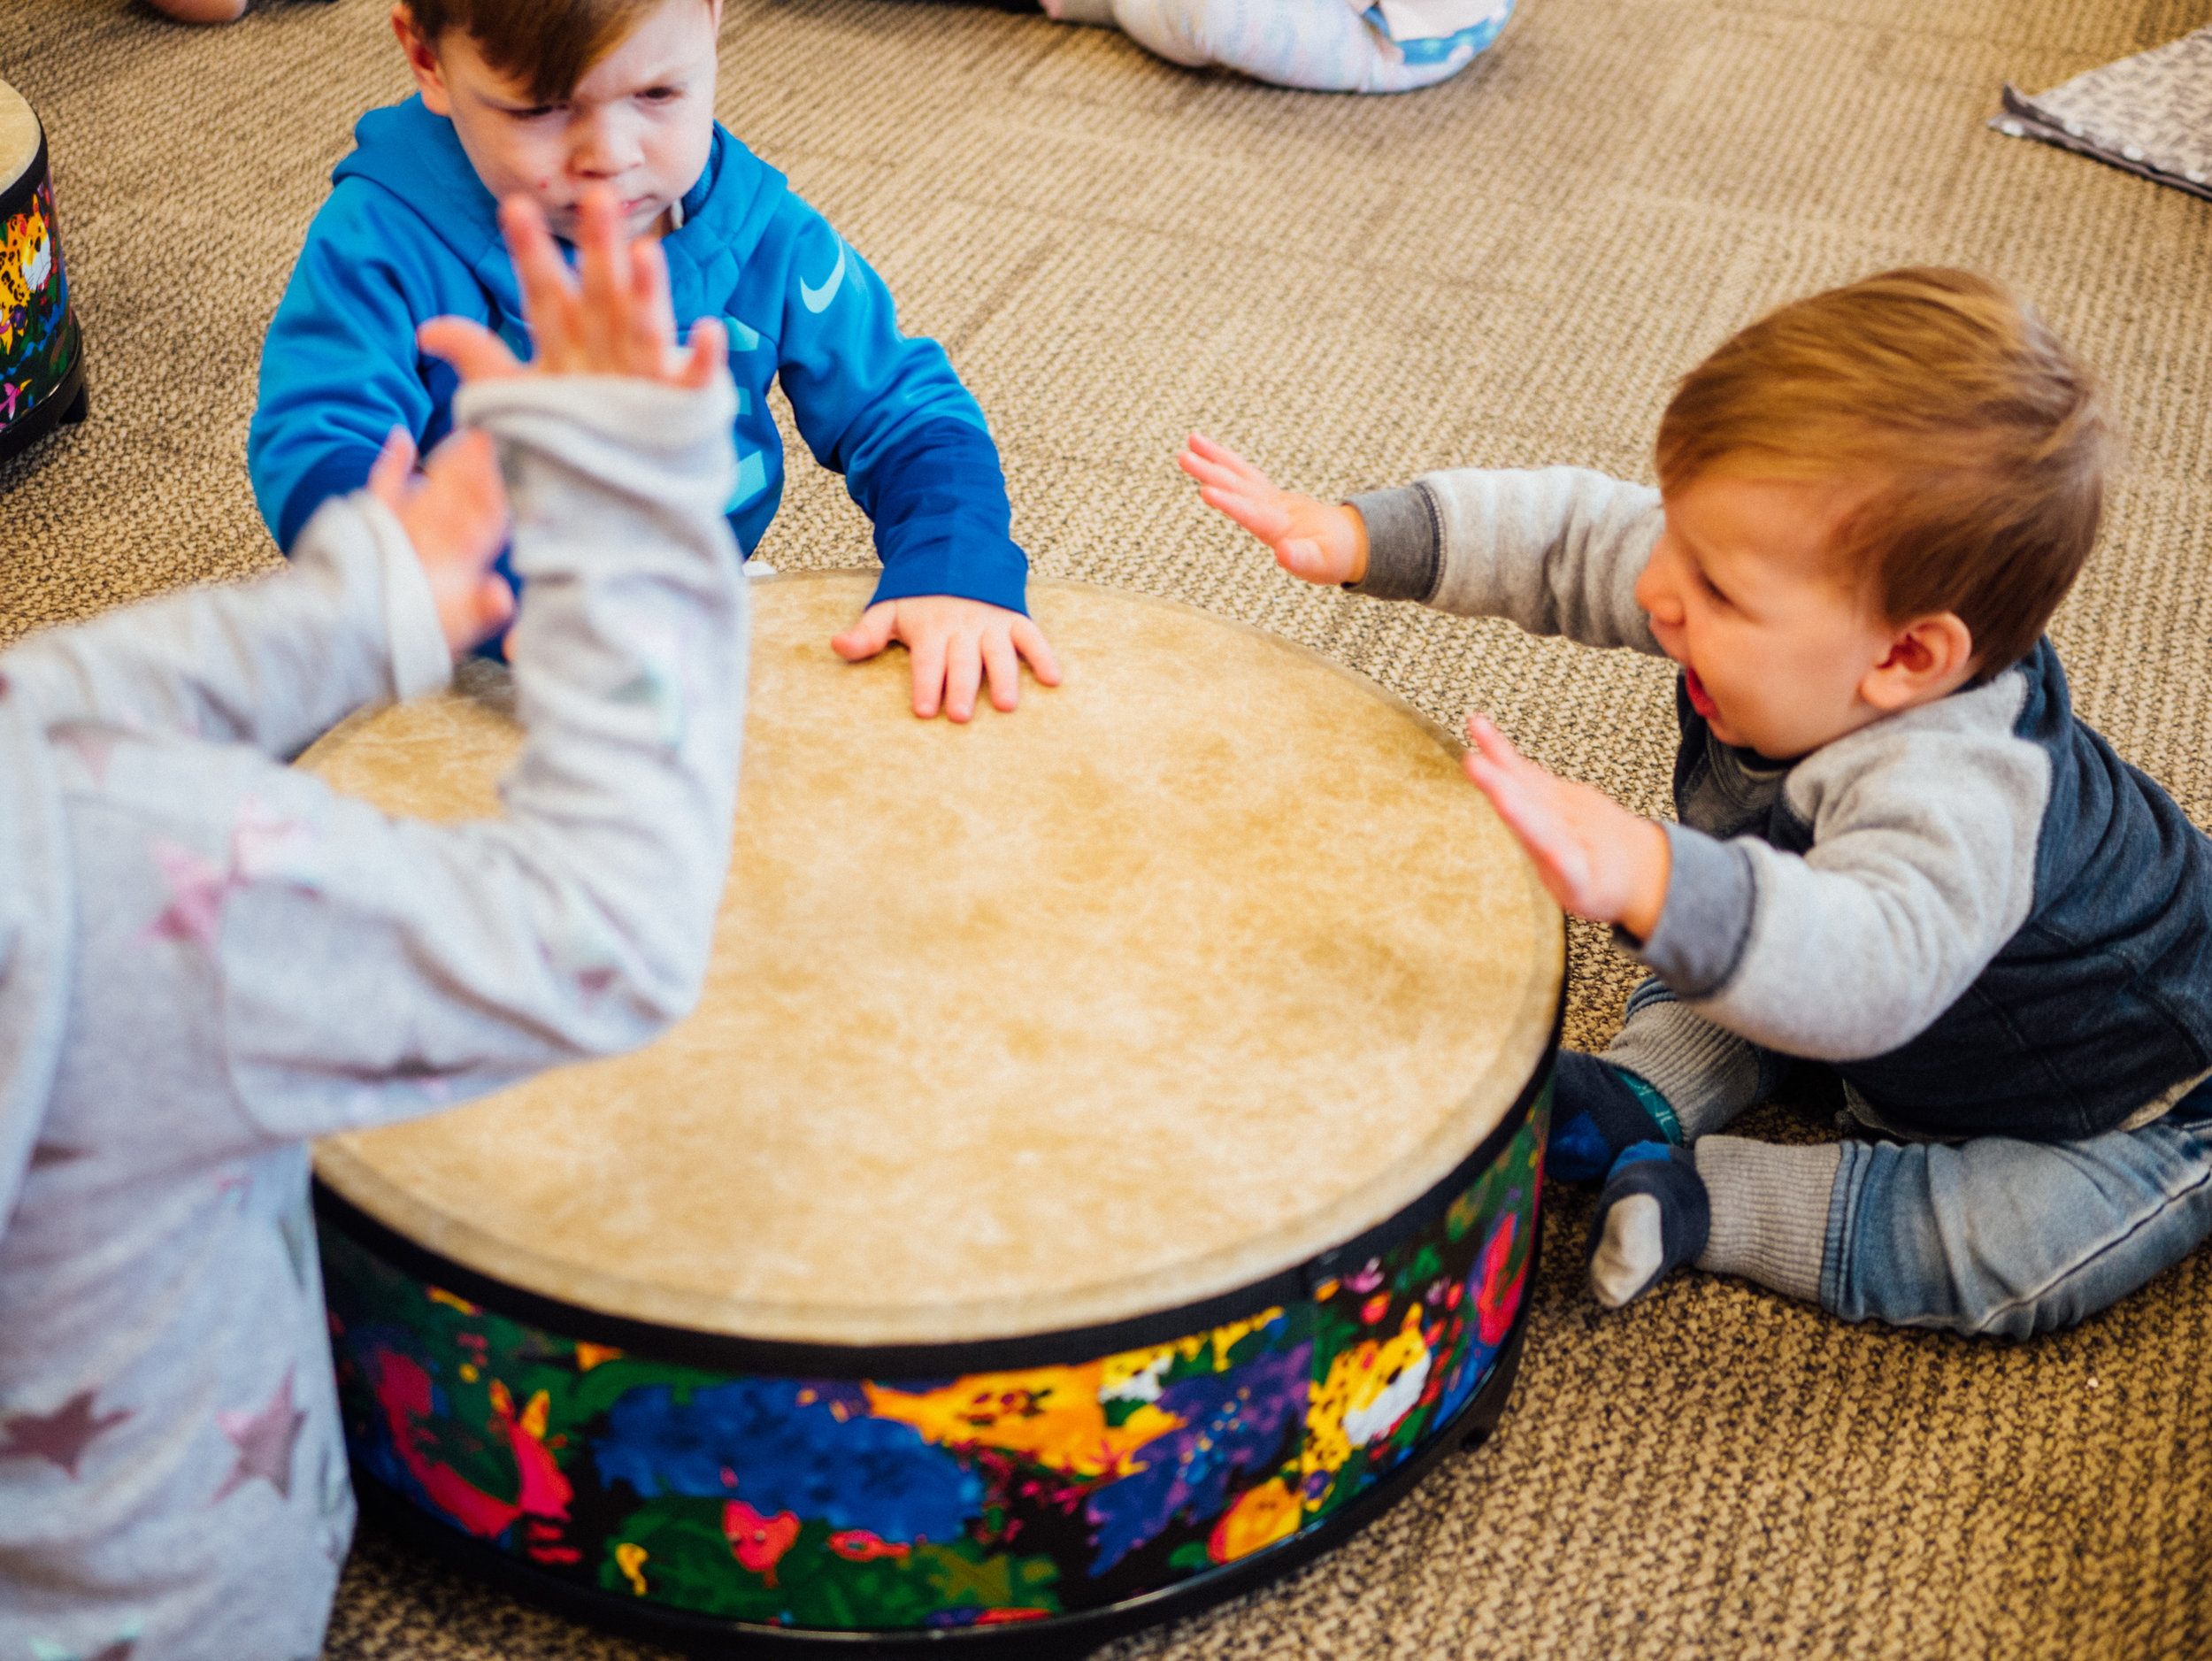 Children'sClasses - Together we can change the world for the better, one child at a time. Respectfully nurturing their creativity, filling children's bodies, minds and hearts with music.Sounds Like This Frankston based family classes and quality incursions for kindergartens and daycares.